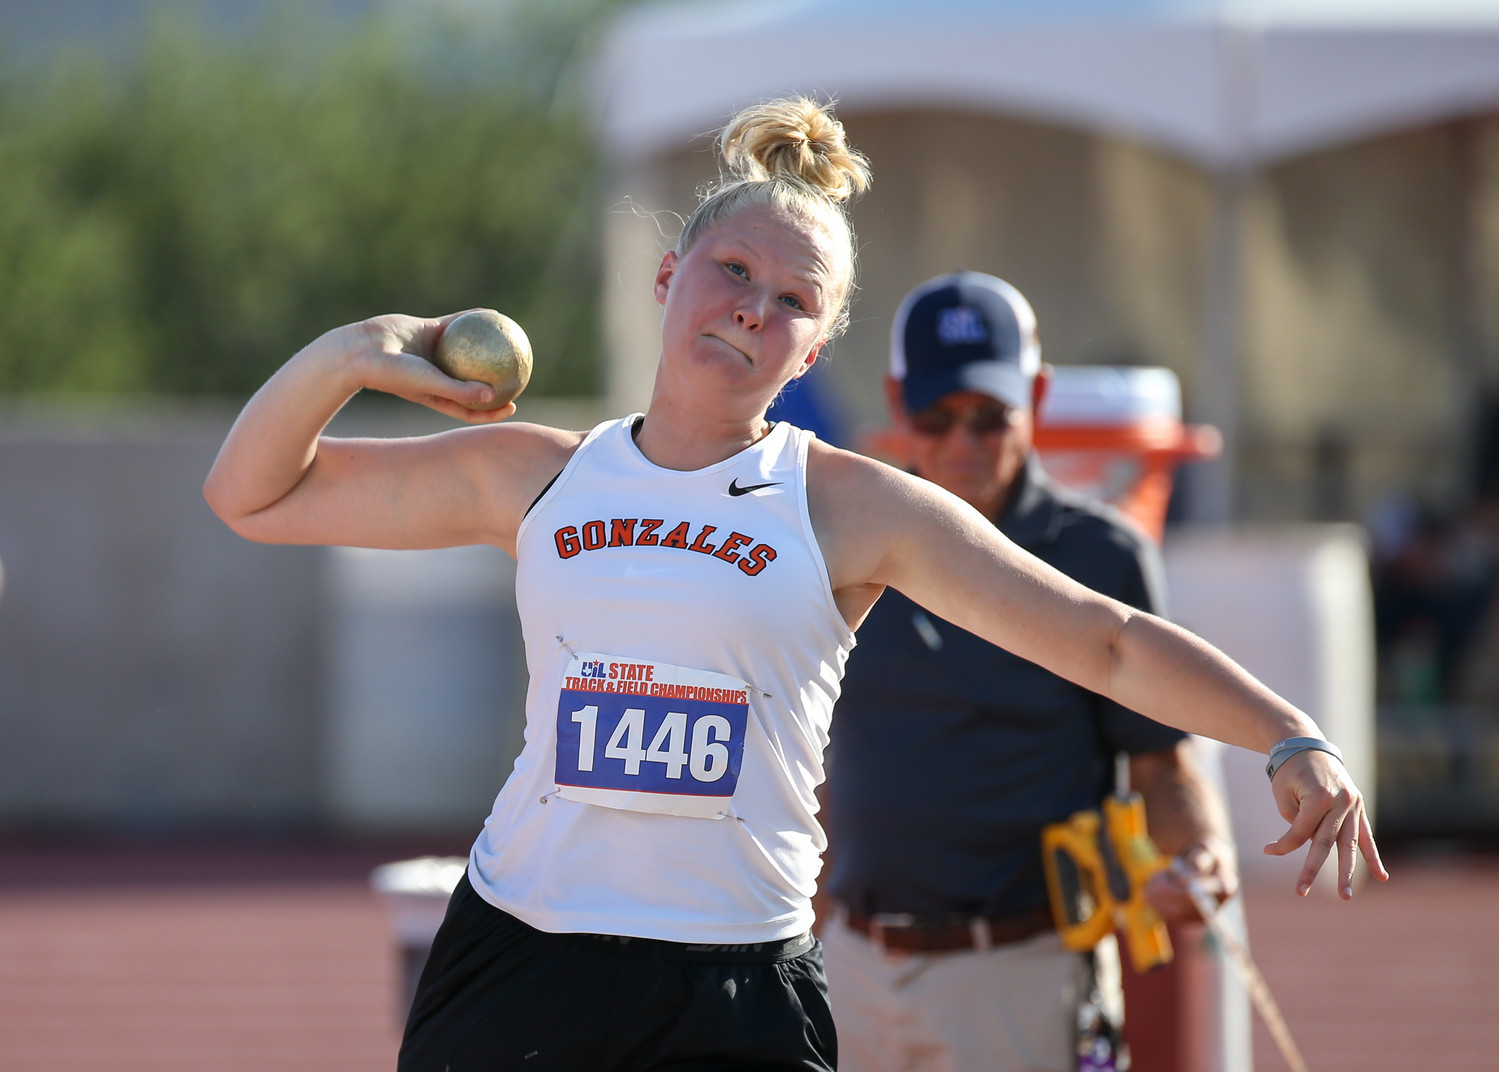 Devon Williams of Gonzales High School competes in the Class 4A girls shot put event at the UIL State Track and Field Meet at Mike A. Myers Stadium in Austin, Texas on Friday, May 11, 2018.